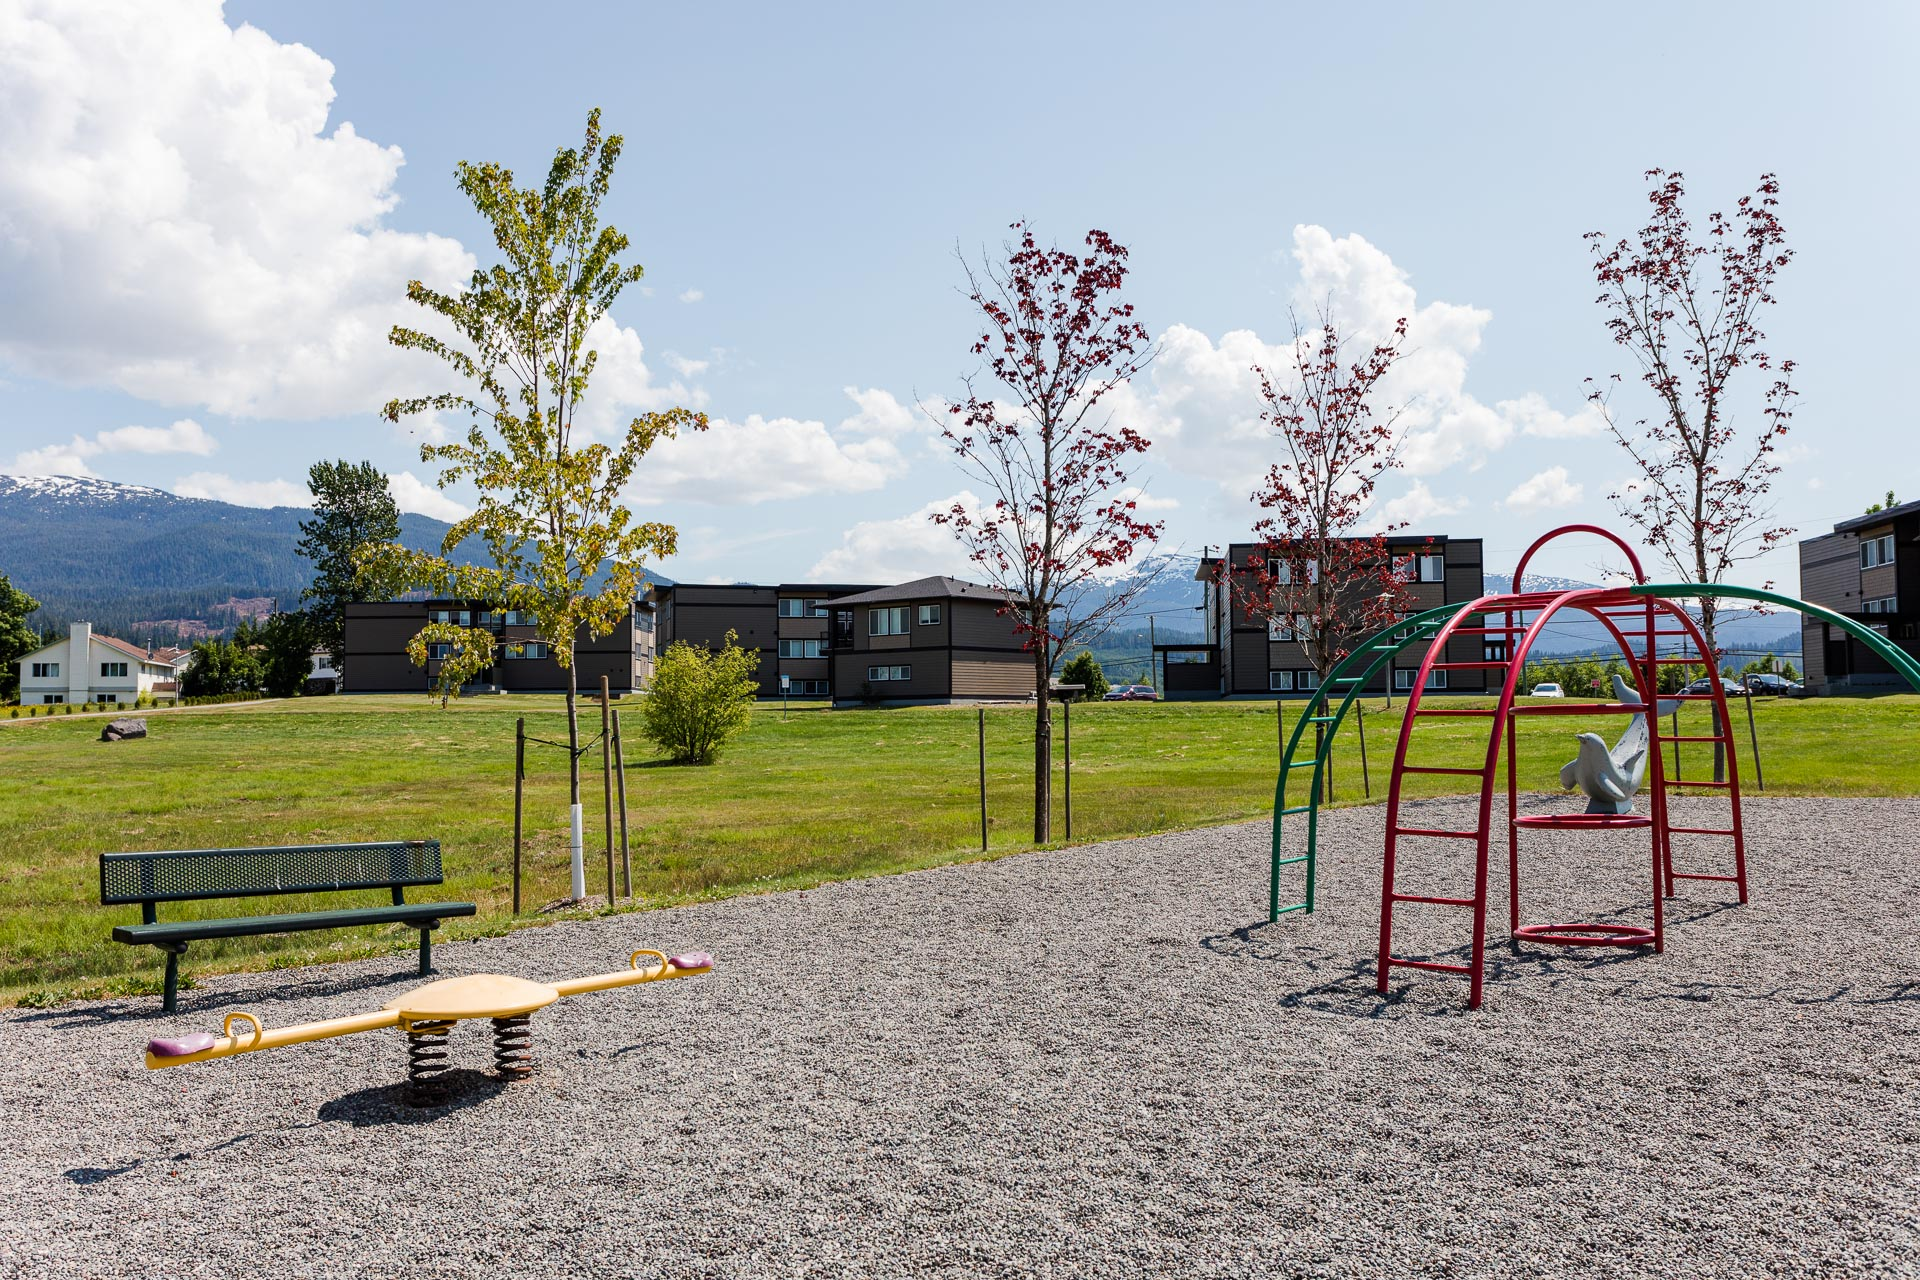 The park near Hillcrest Place Apartments in Kitimat, B.C., with the apartments in the background.